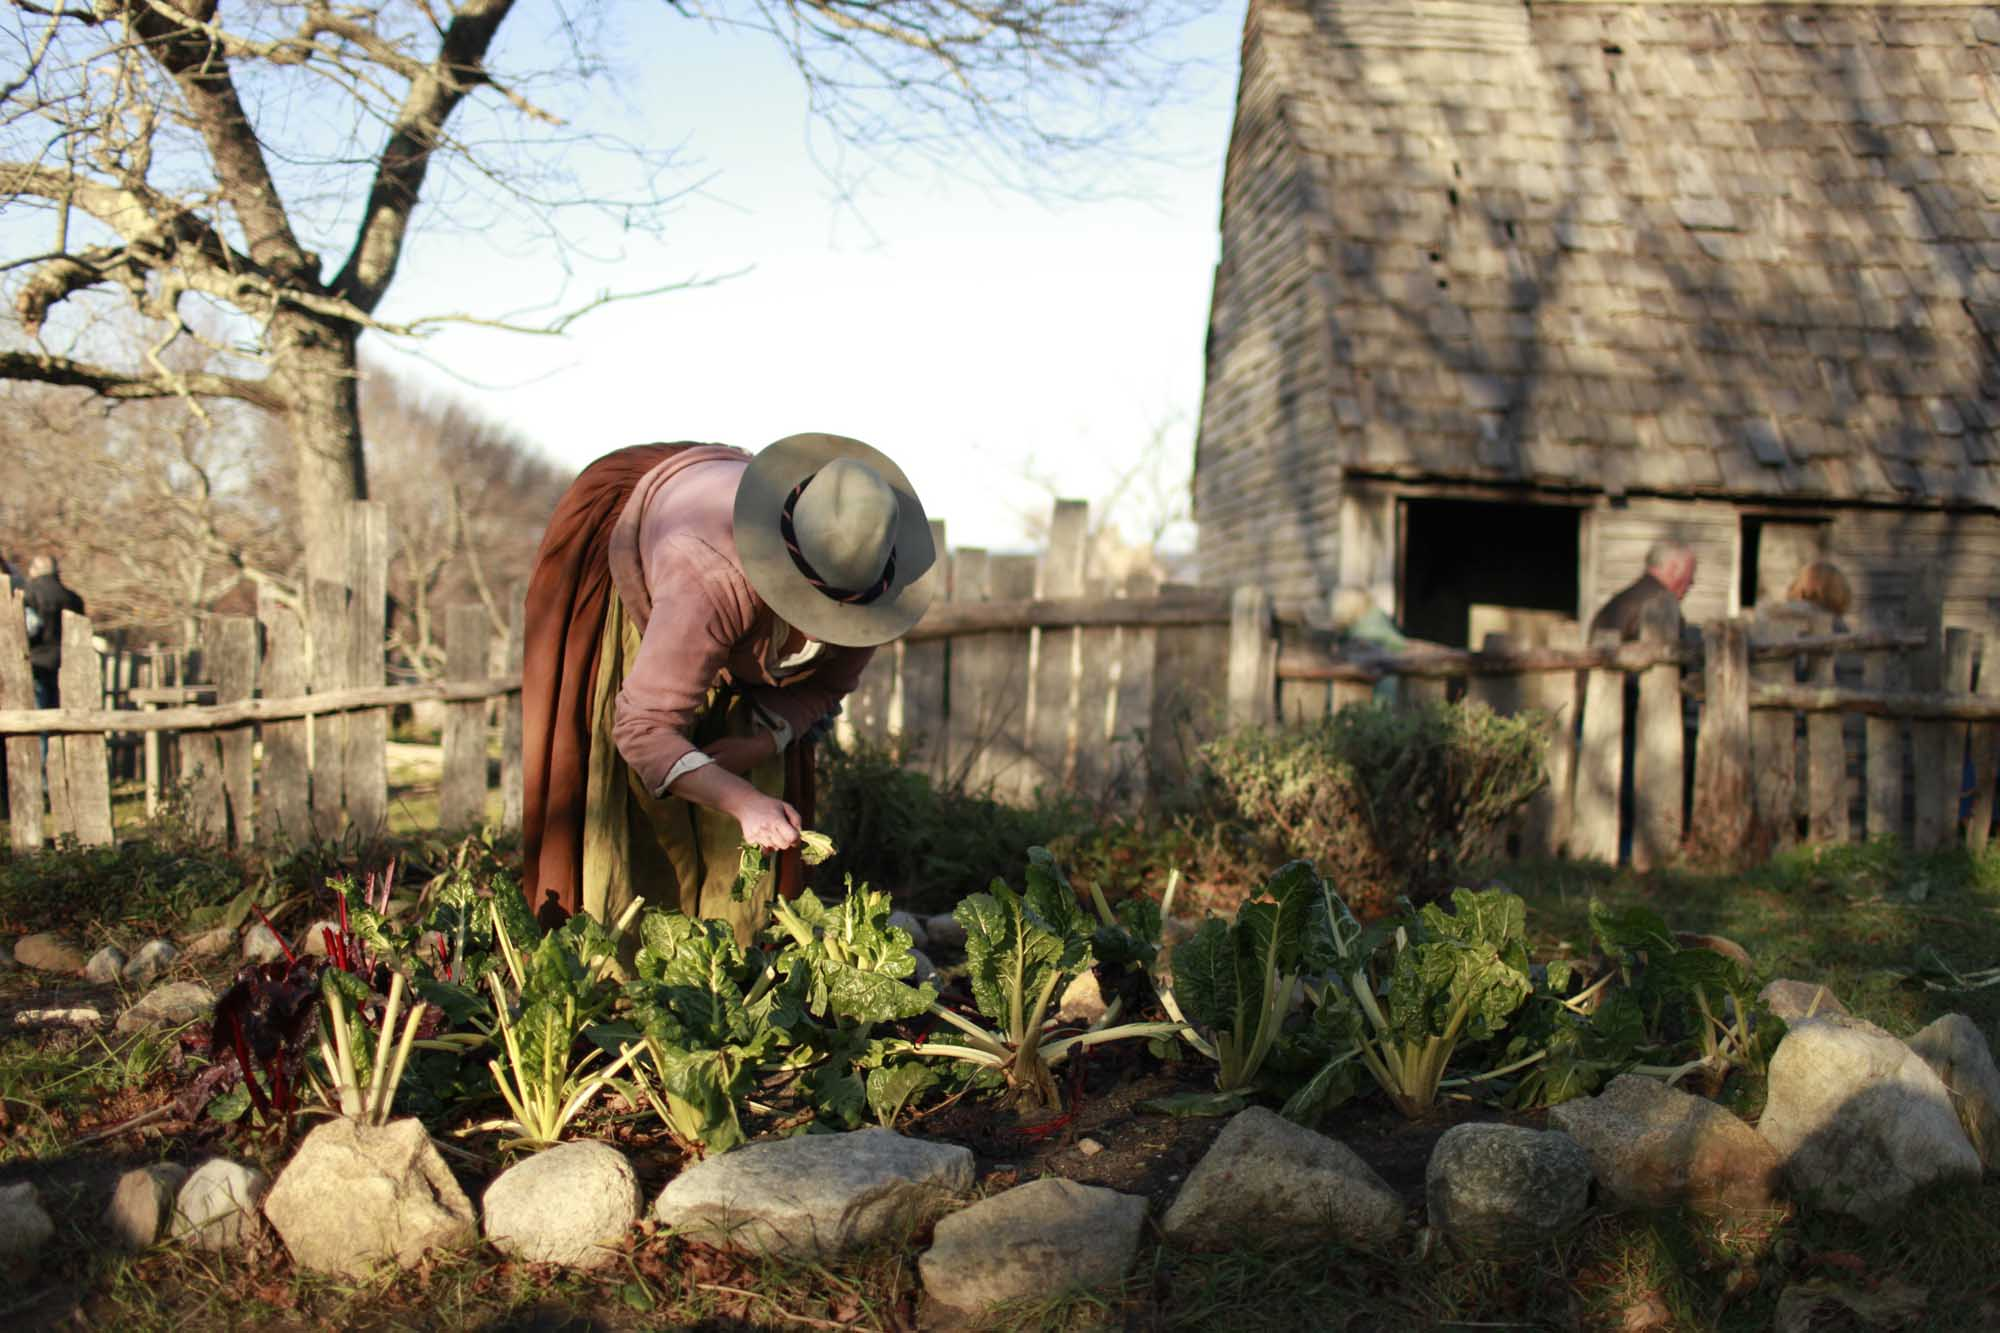 Gartenarbeit Plimoth Plantation. – Foto: Massachusetts Office of Travel and Tourism